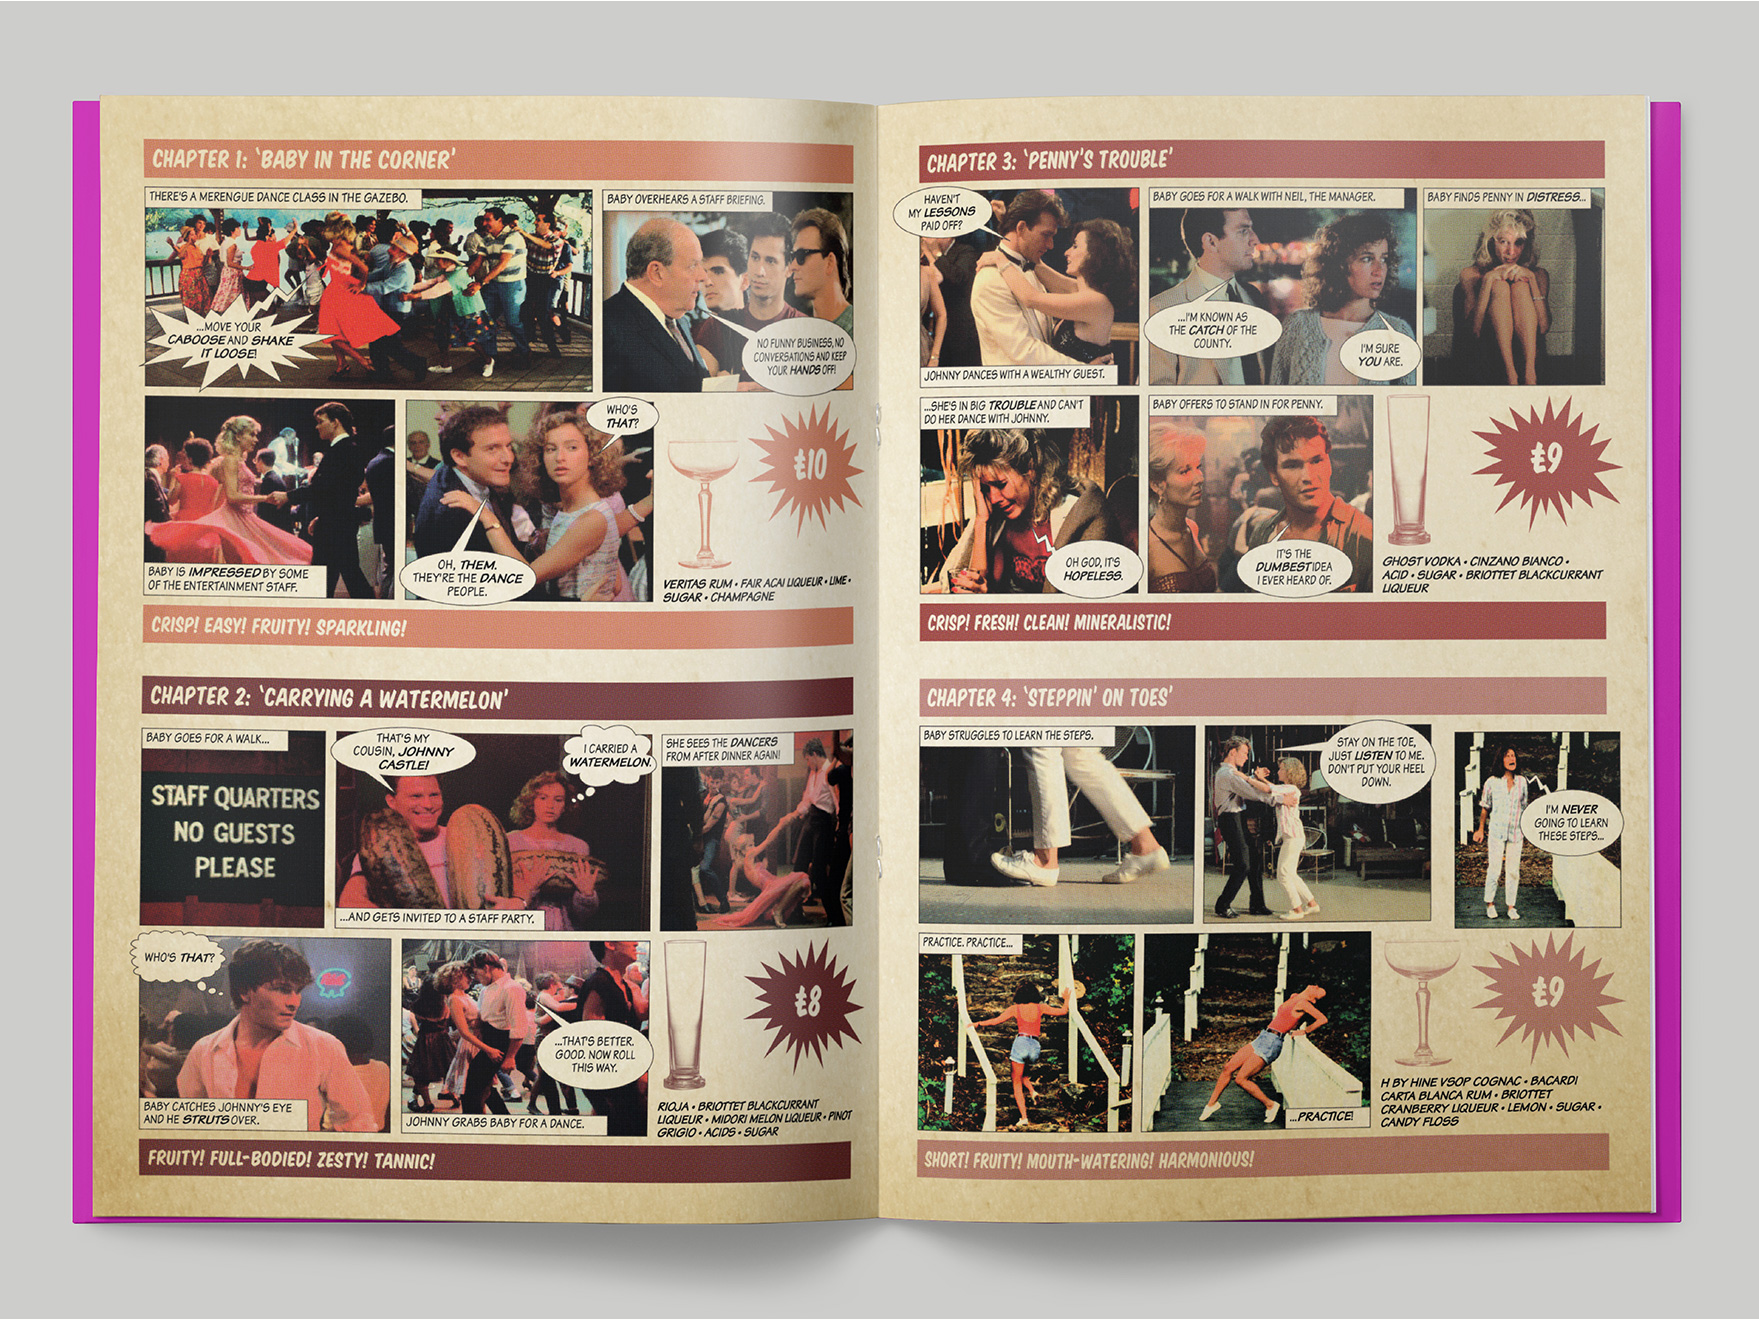 Inside pages from a classic 1980s film-themed cocktail menu at the Falstaff Hotel